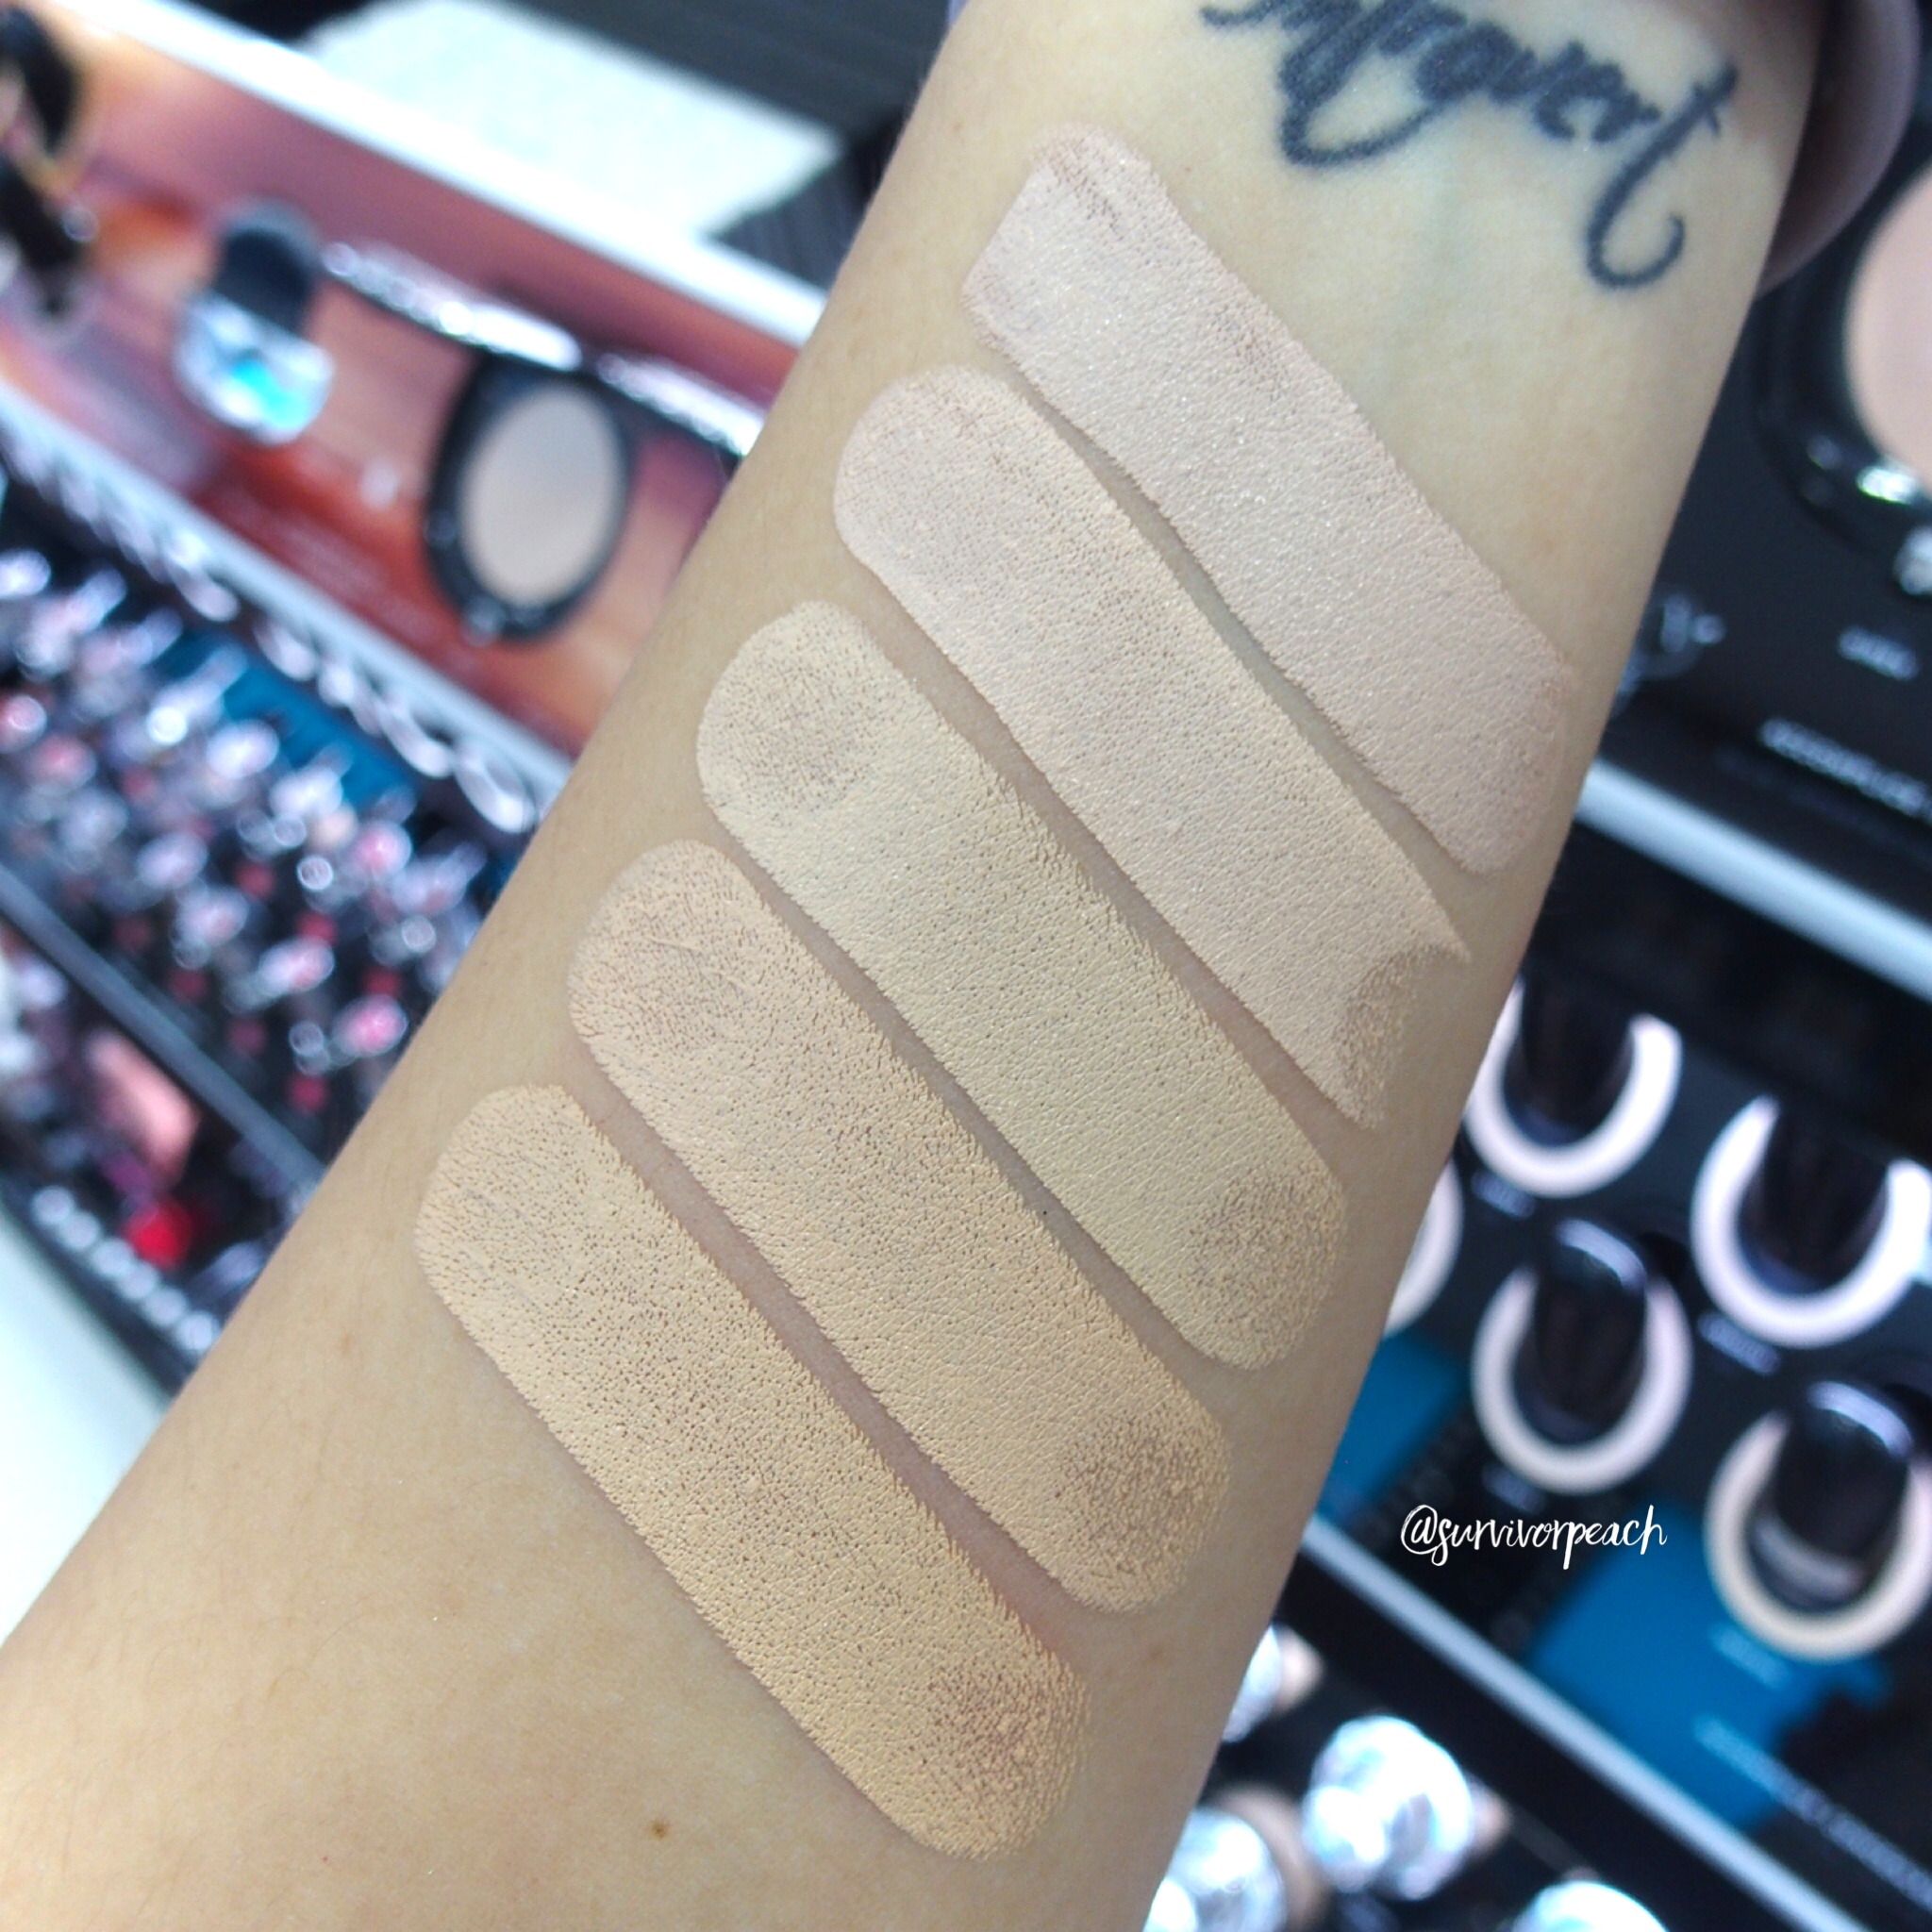 Marc Jacobs Accomplice Concealer & Touch Up Stick swatches - Light